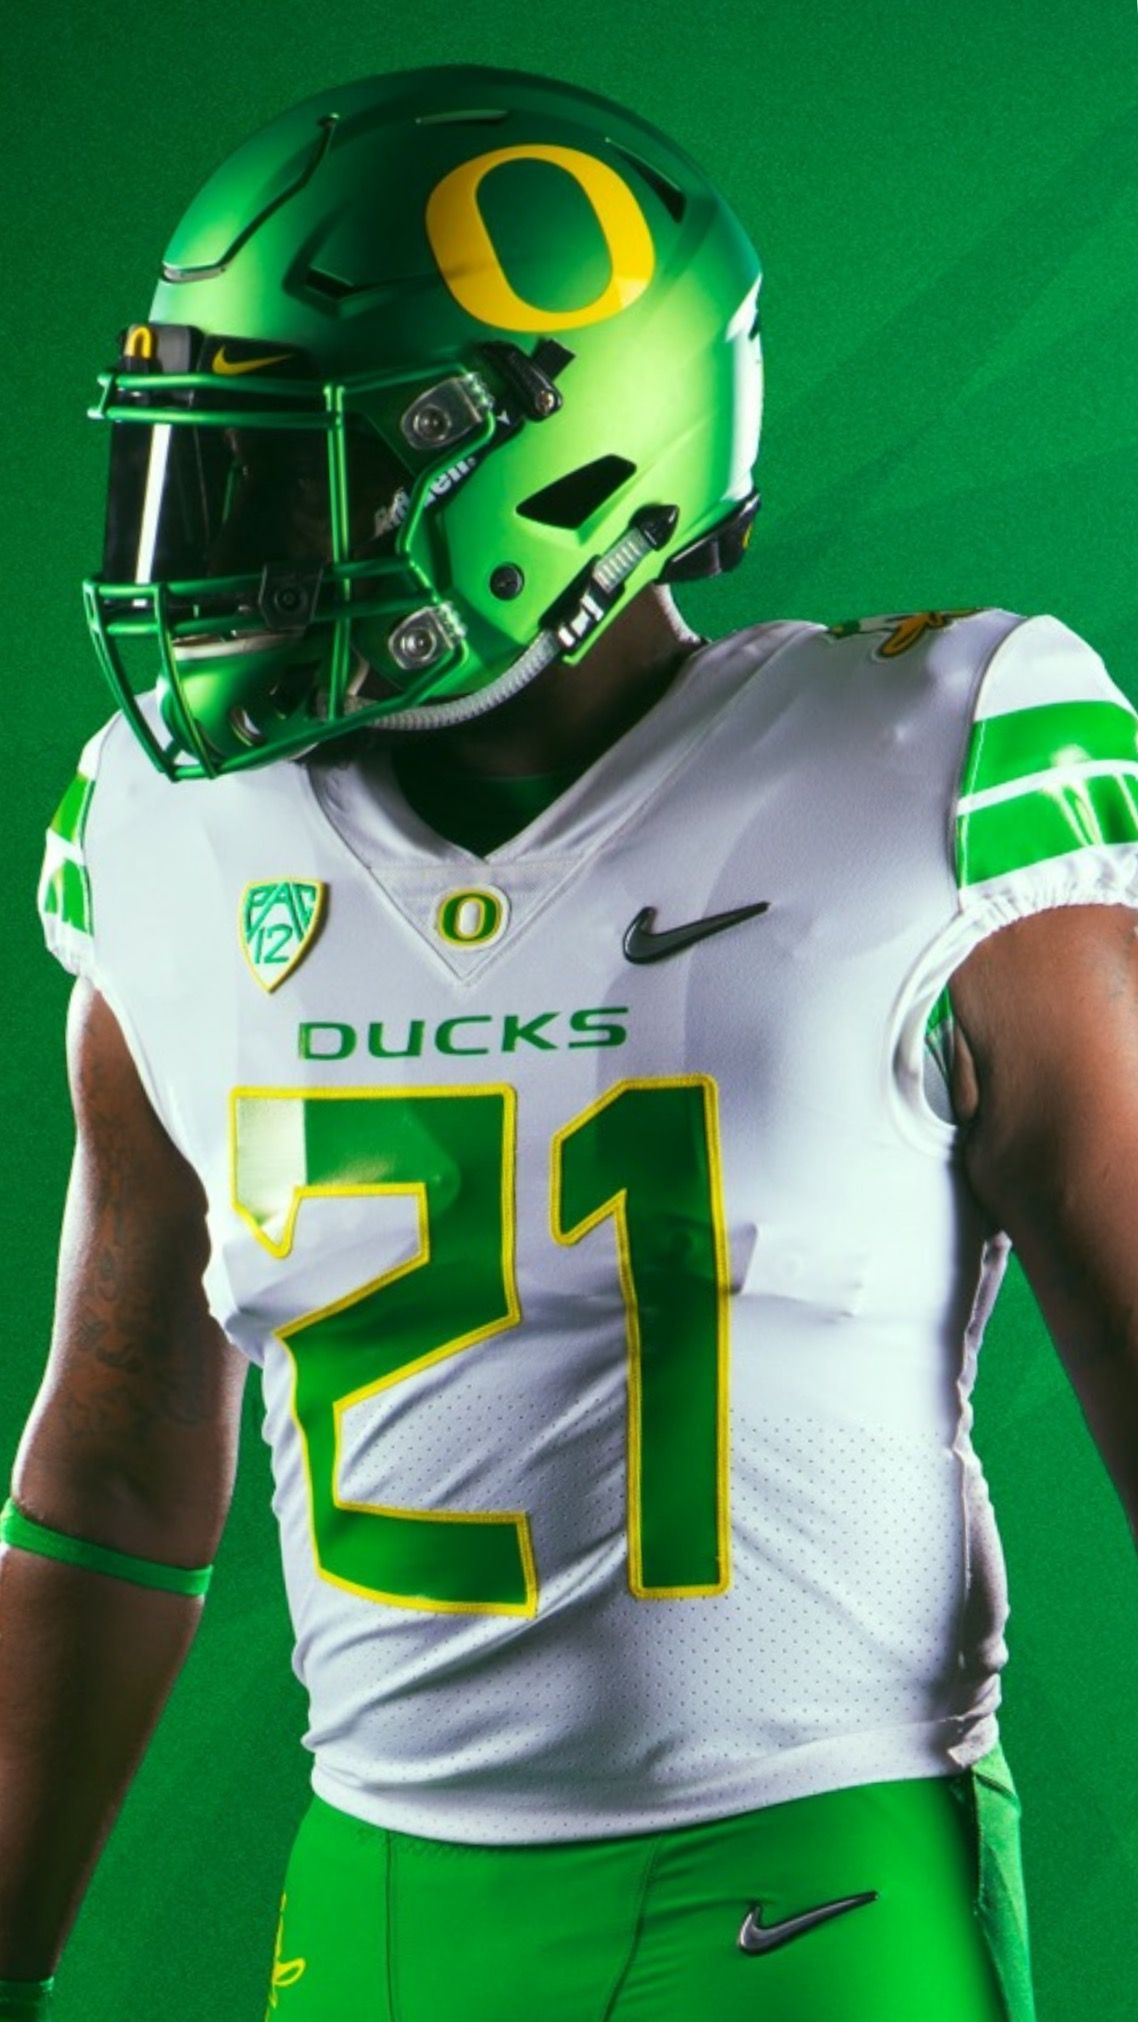 White With Fighting Ducks Logos On Shoulders With Flat Green Helmets With Yellow O Uniform Co Ducks Football College Football Helmets Oregon Ducks Football